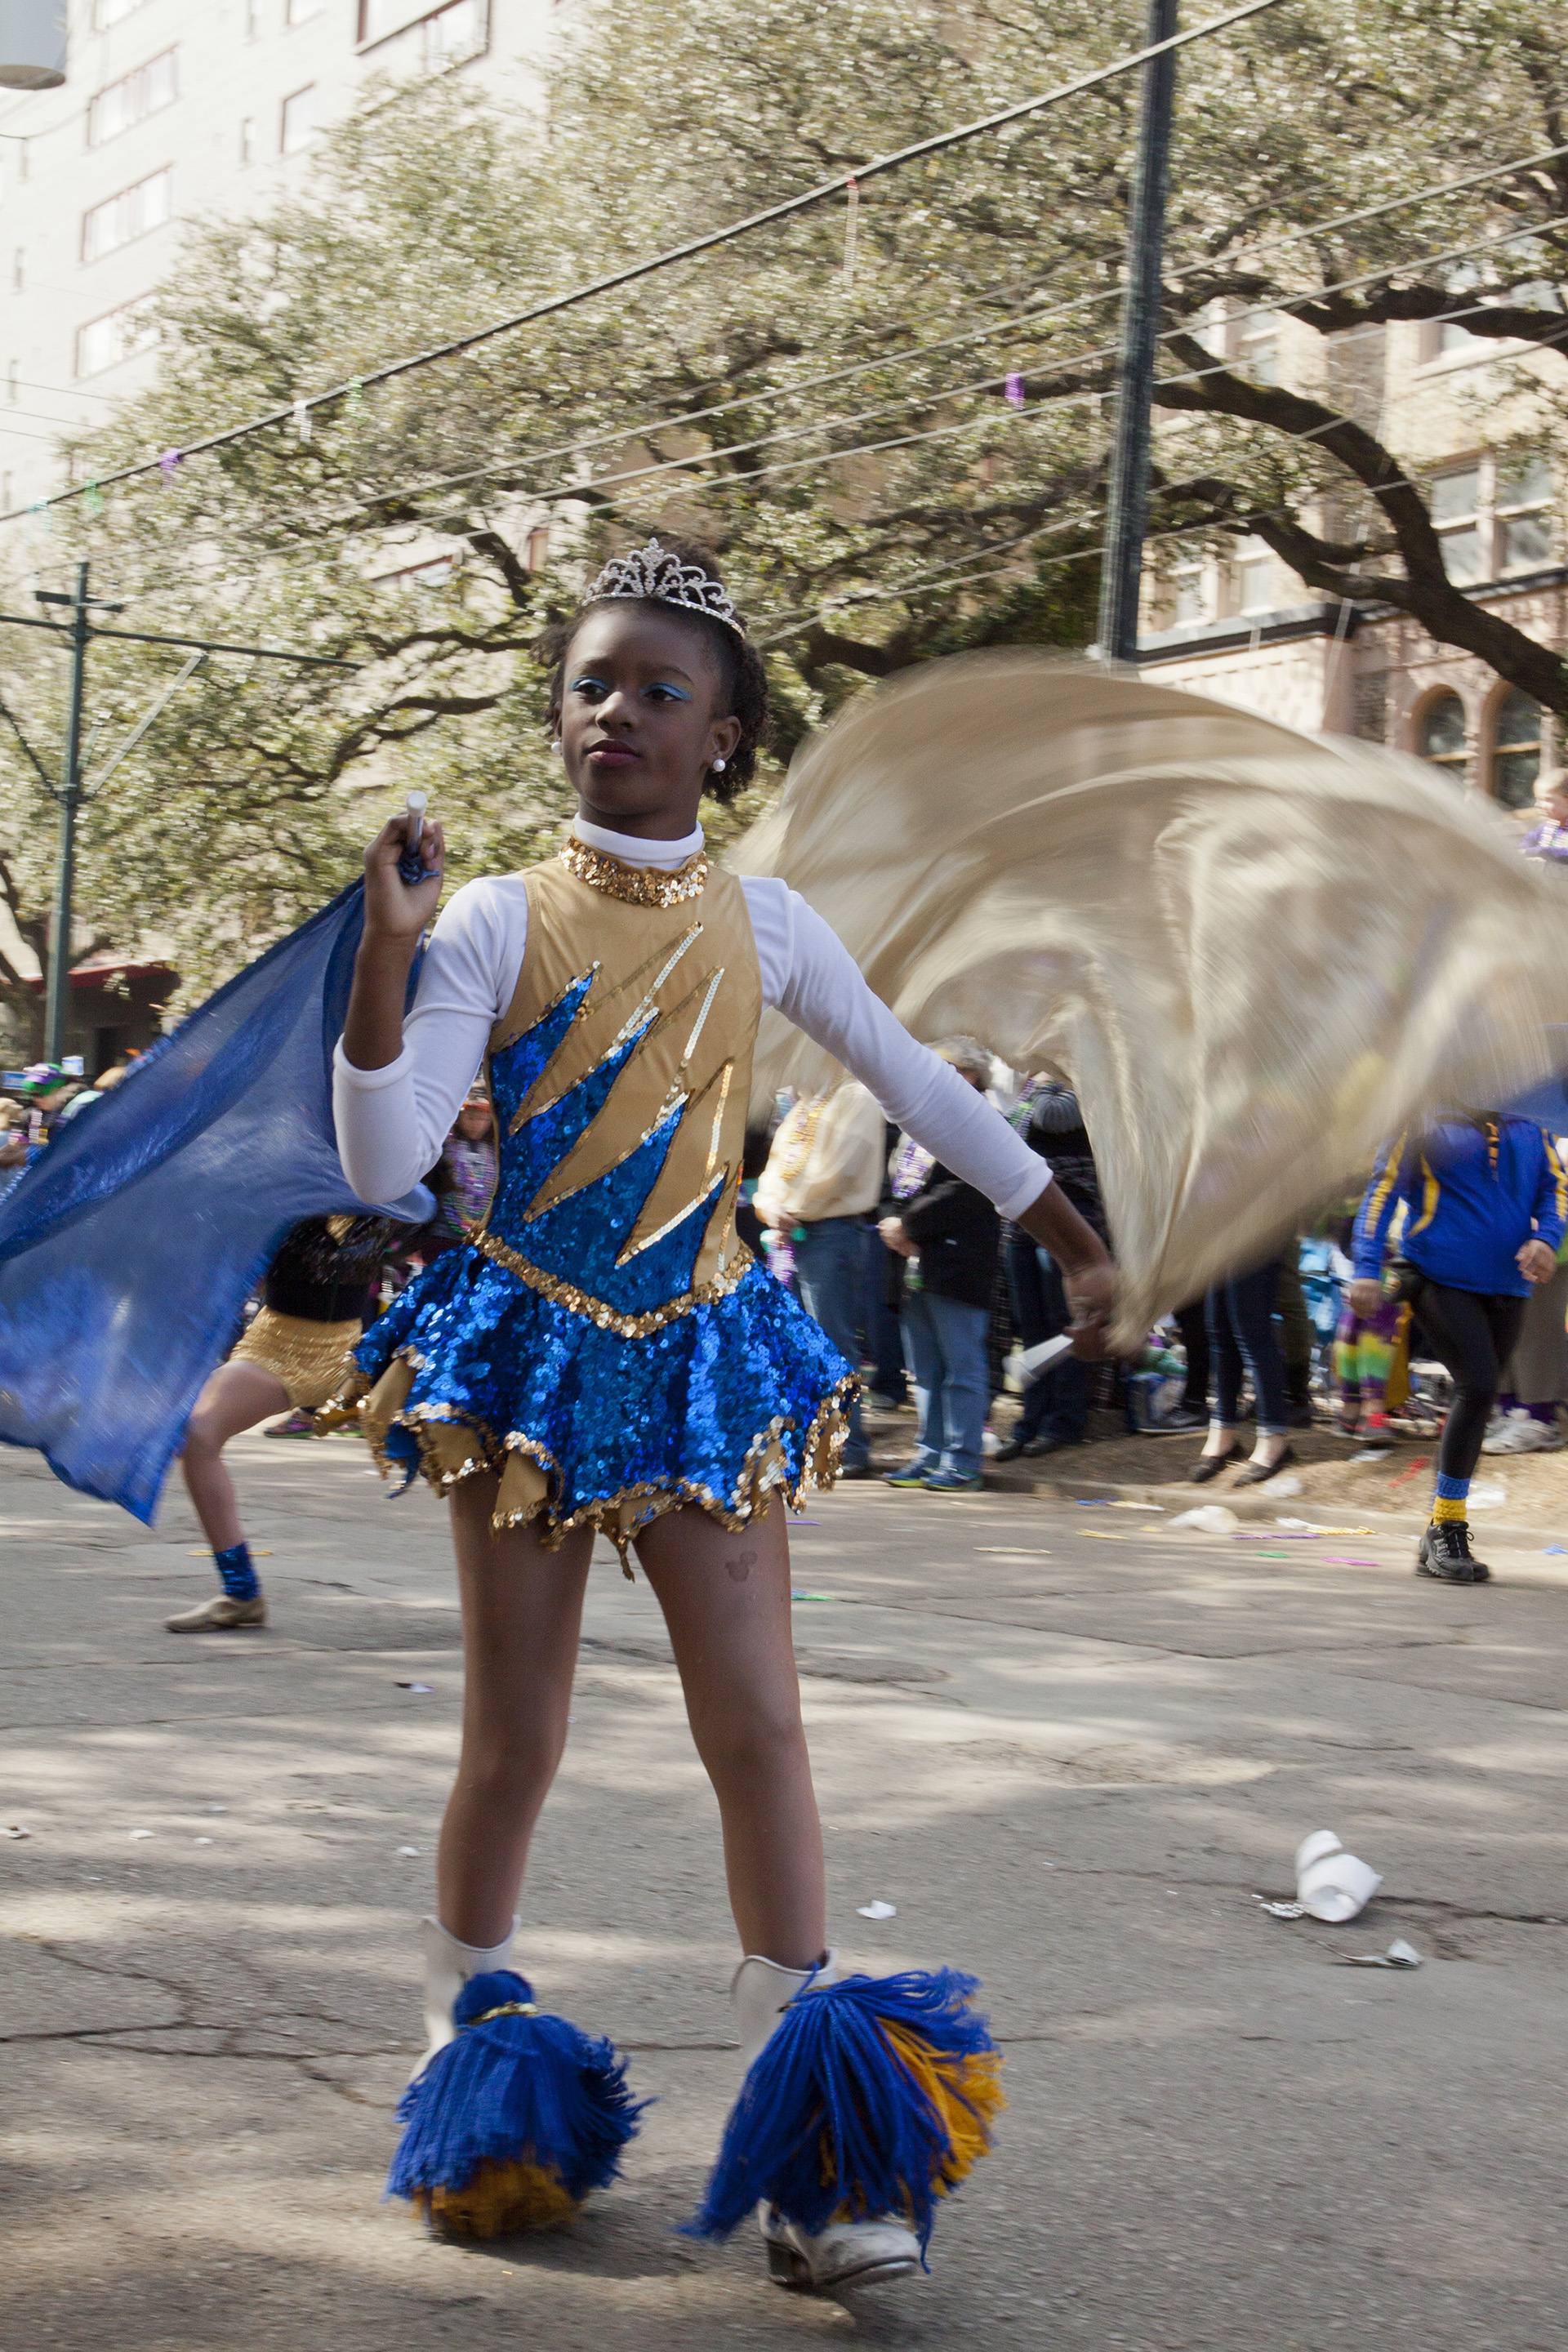 Marching bands, flag twirlers, and dancers from local schools joined the parades and set the rhythm for the procession.